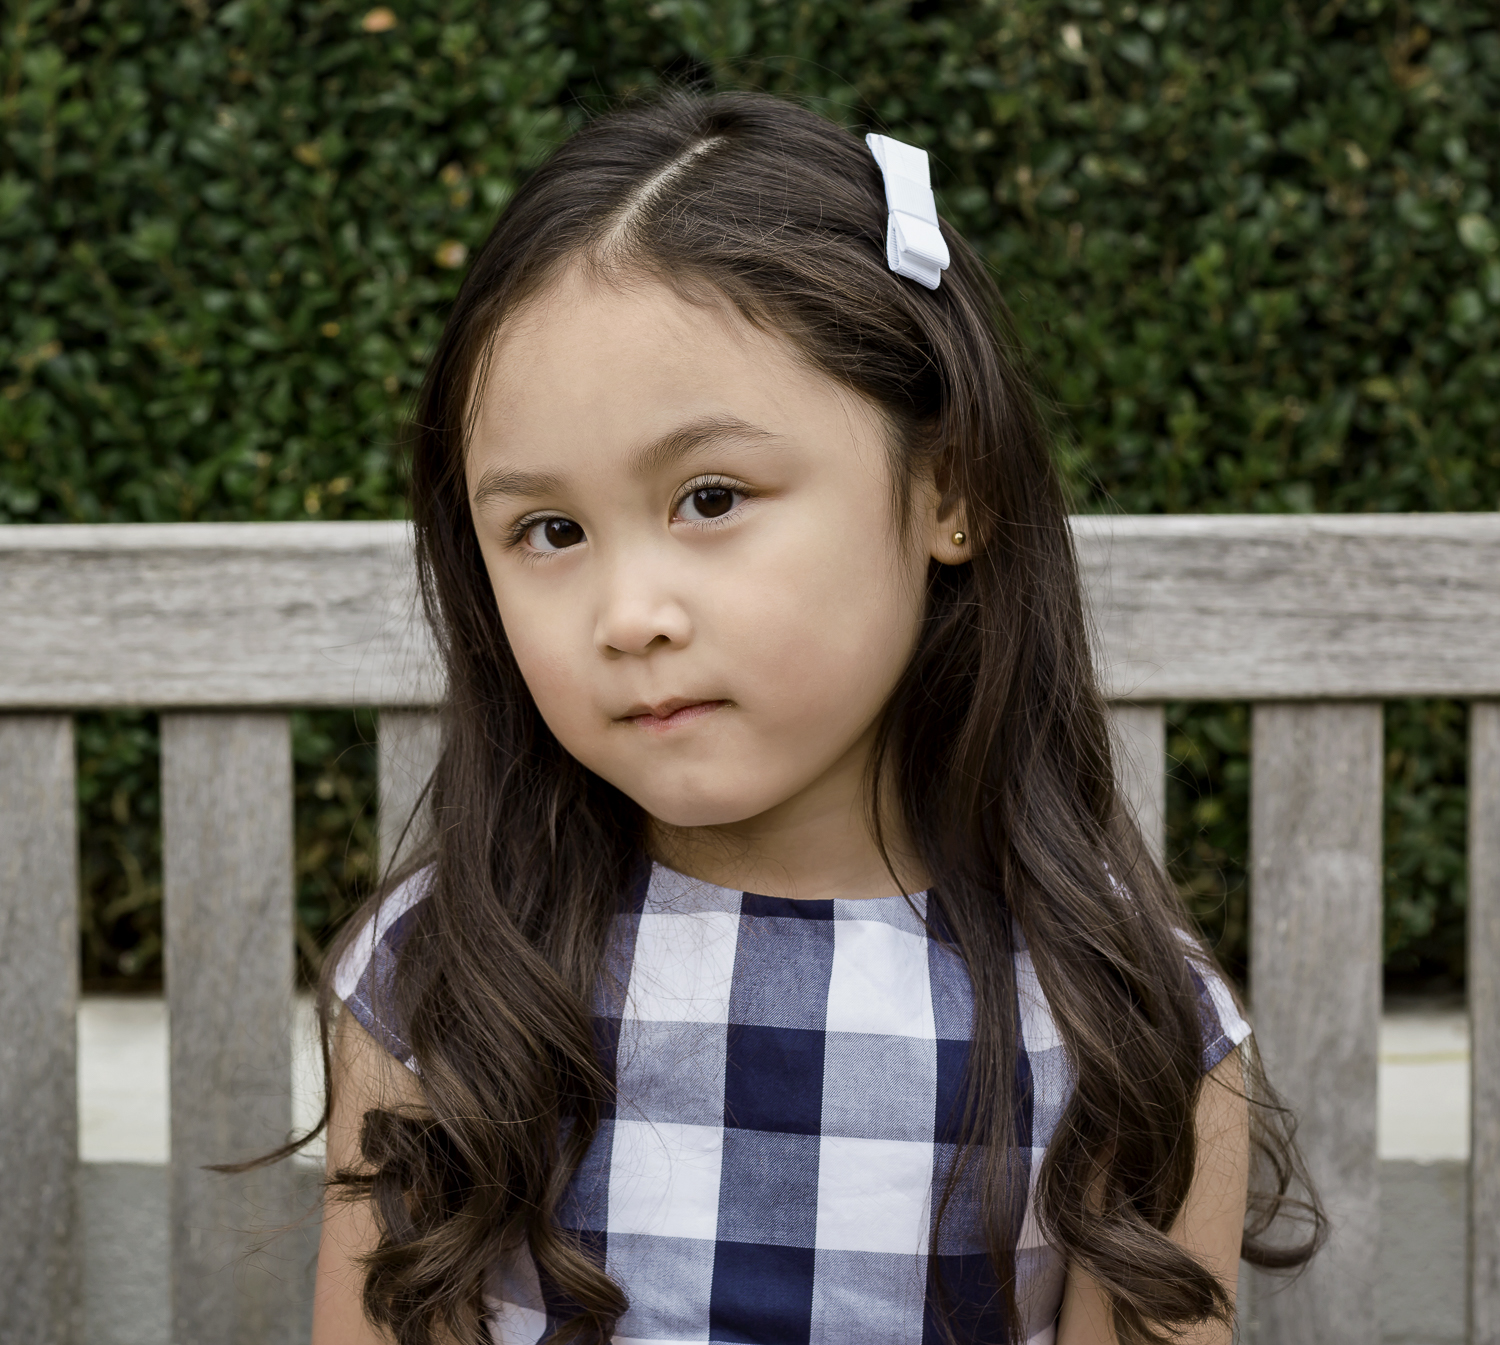 Hana Montero - Age: 4Favourite superhero: Avengers / Captain AmericaAgency: Bambini Talent GroupInstagram: @rhizelle